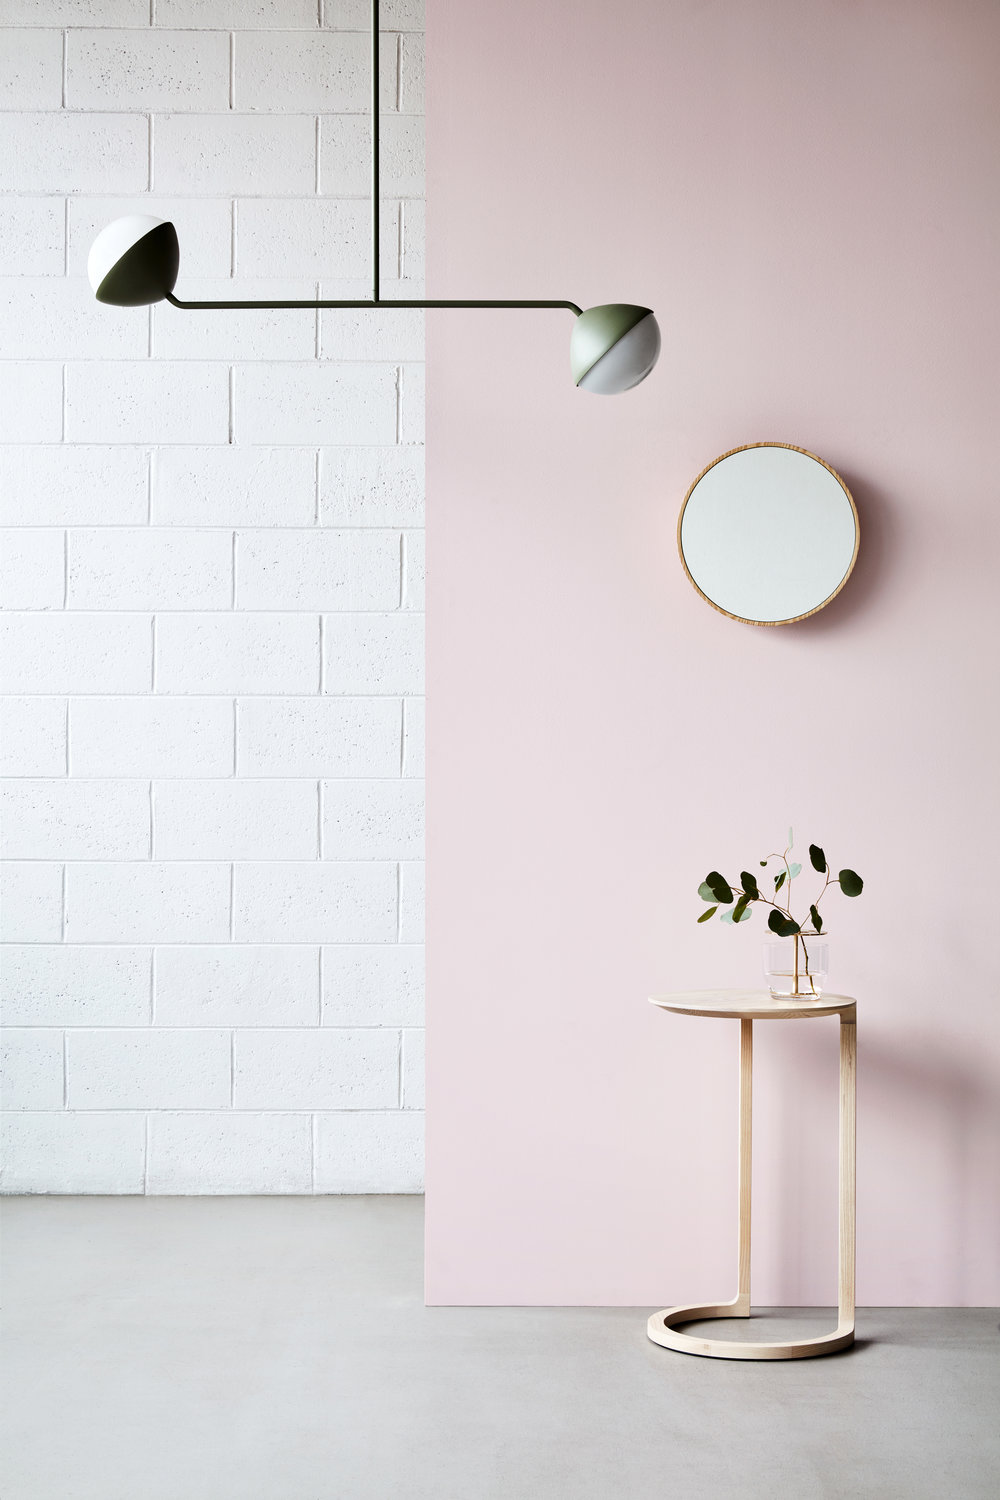 Jolly by Kate Stokes for  NAU  is a new lighting collection consisting of a compact wall light, single rod pendant and double rod pendant as shown here. The double rod pendant can be layered to create larger installations. Styling by Heather Nette King. Photography by Mike Baker.